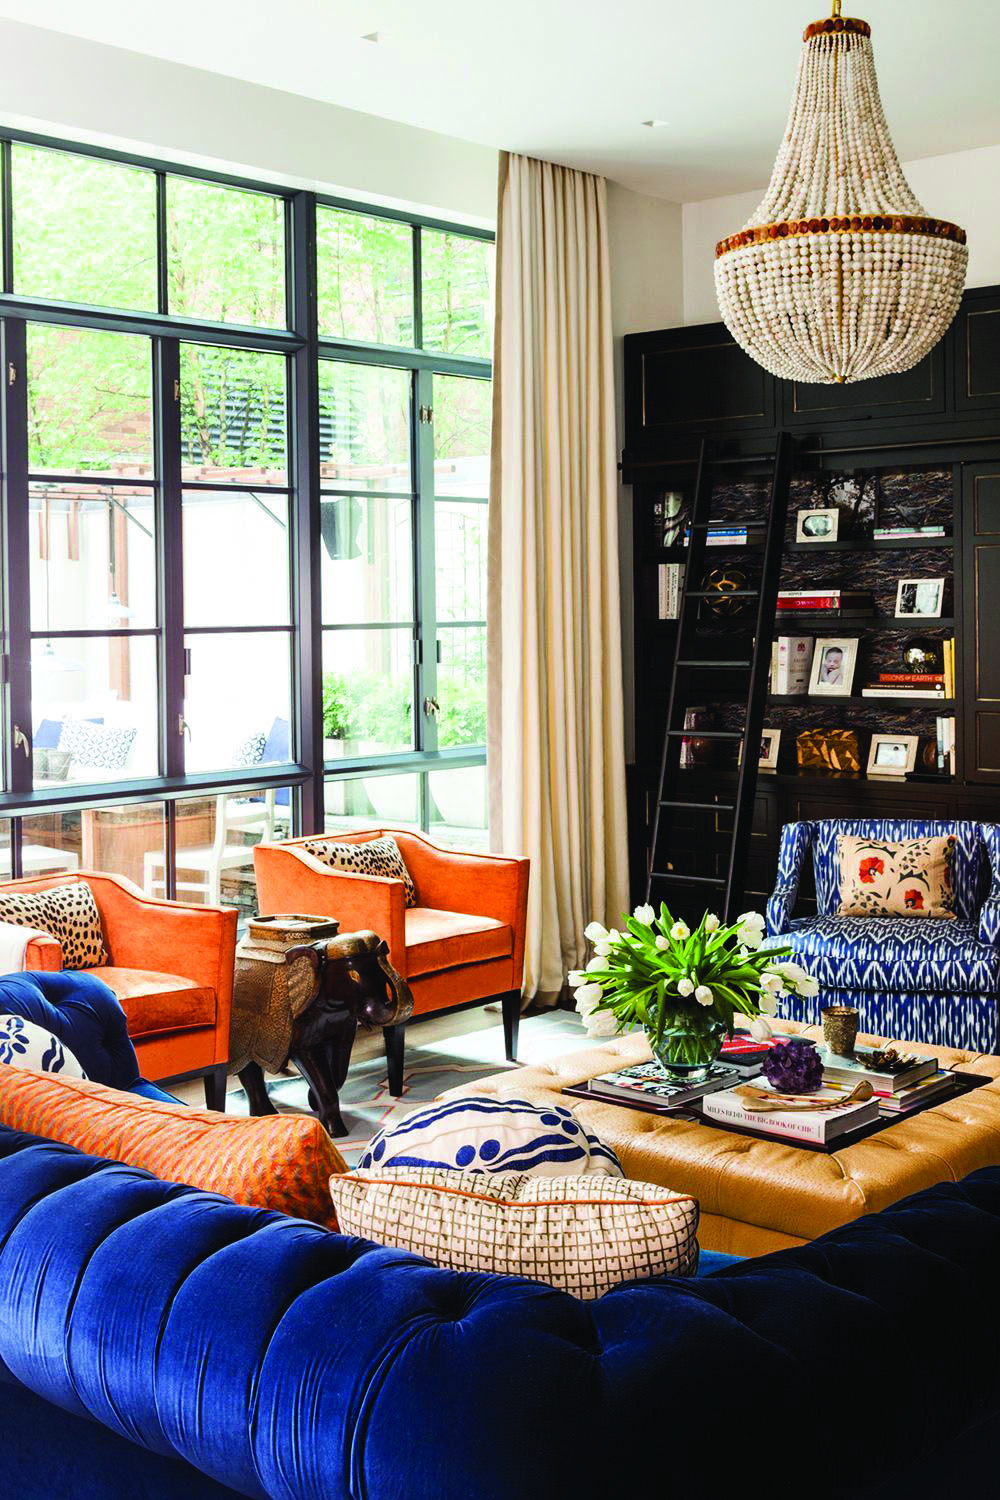 Incredible Blue Living Room Colour Suggestions Dova Home Living Room Orange Blue And Orange Living Room Blue Living Room Color